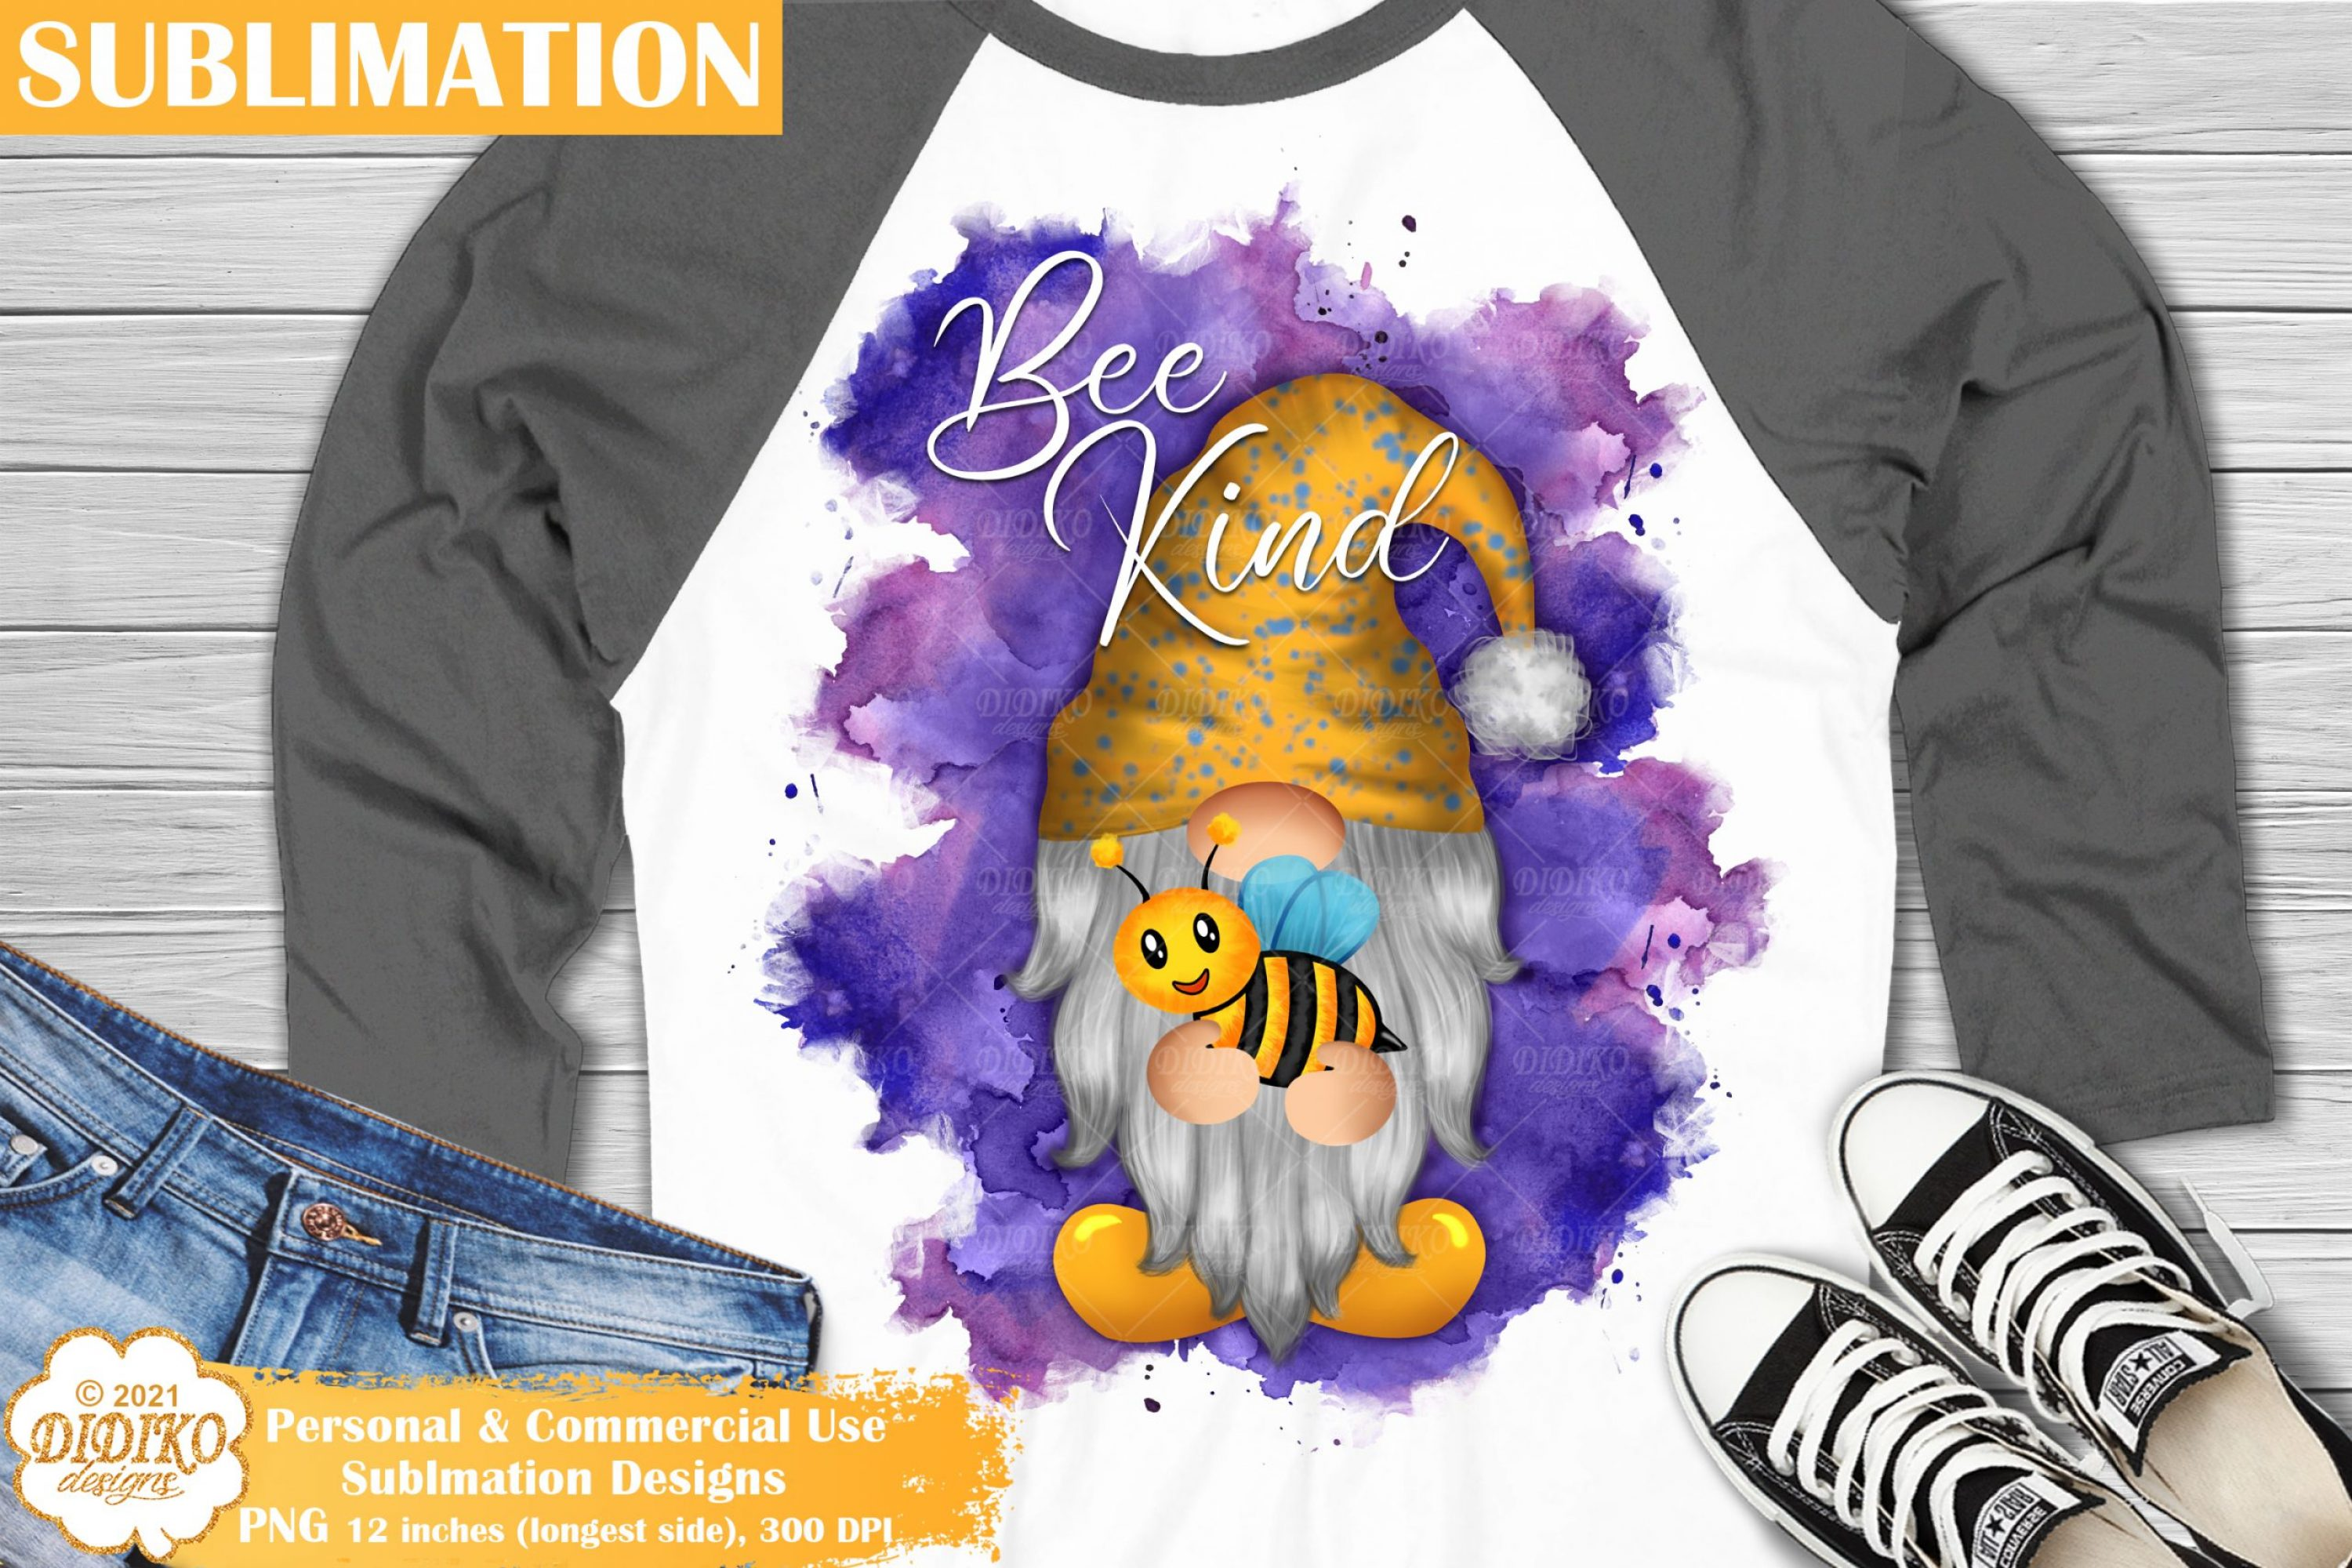 Gnome Sublimation #1, Be Kind sublimation, Gnome png